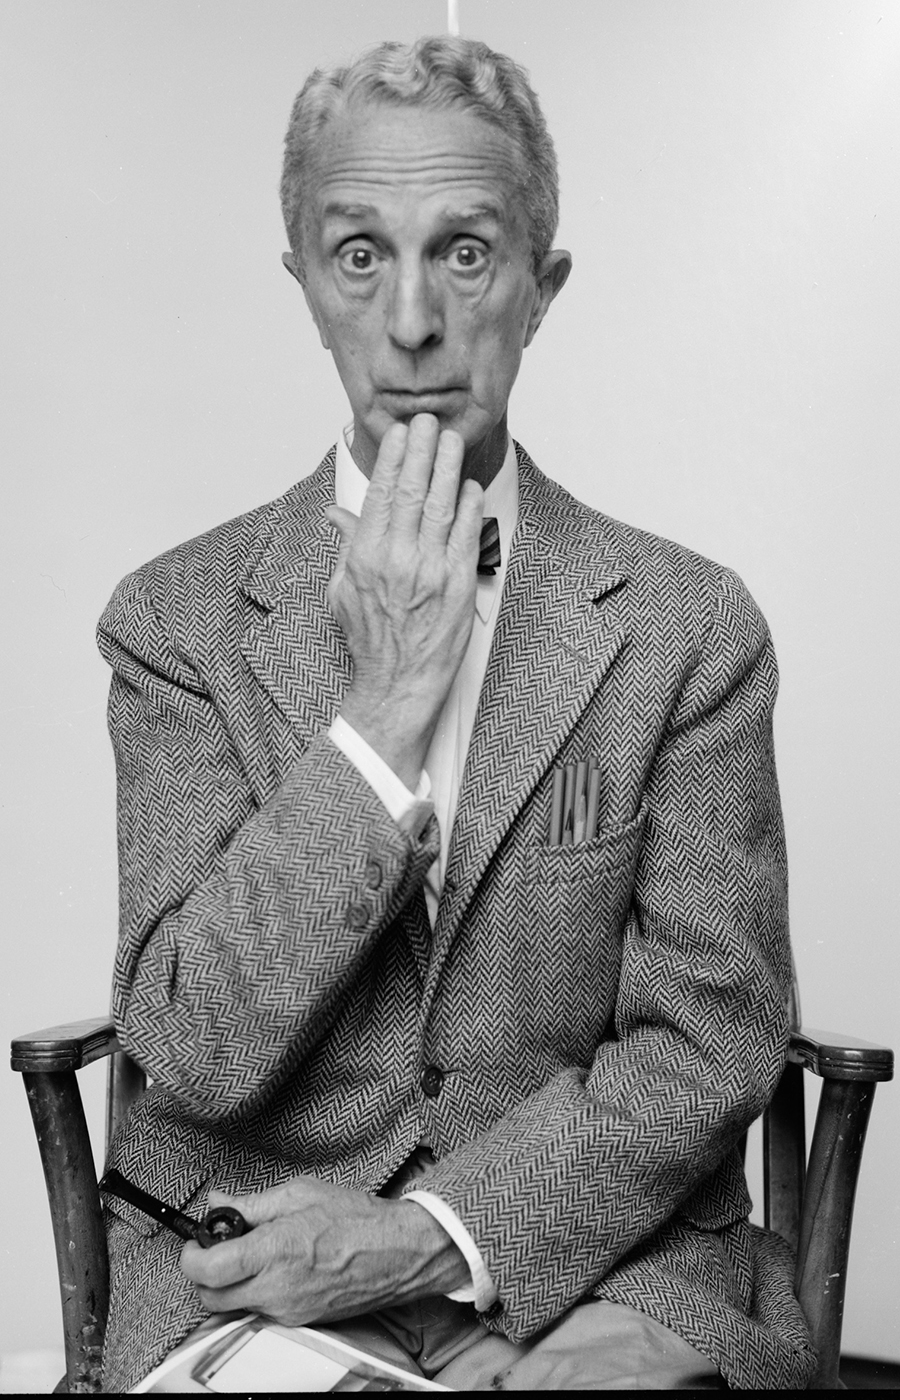 Norman Rockwell Posing in Chair